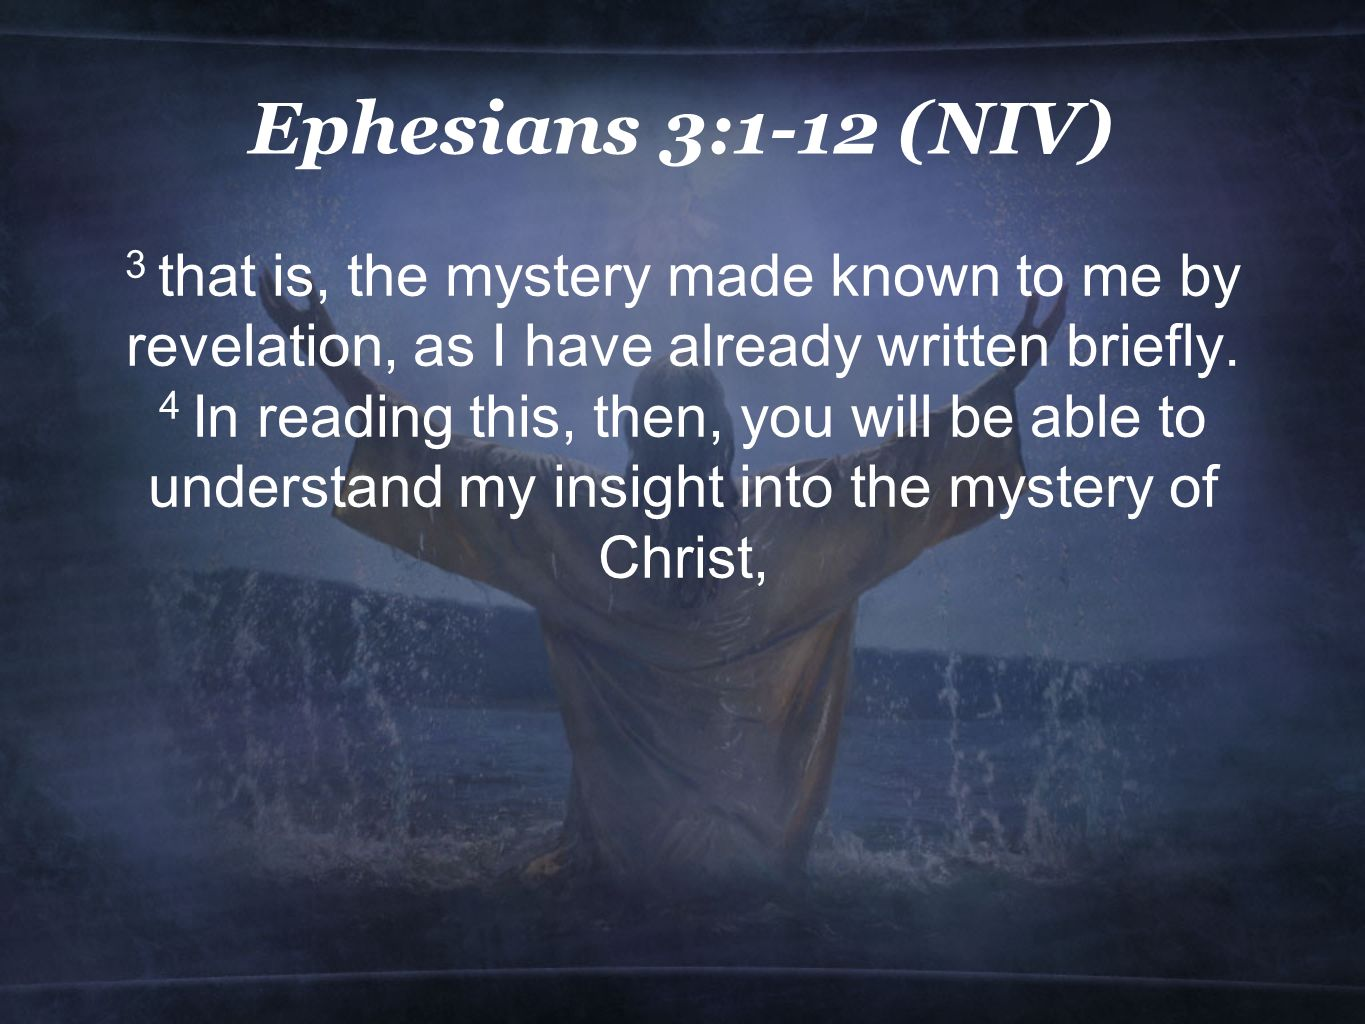 Ephesians 3:1-12 (NIV) 3 that is, the mystery made known to me by revelation, as I have already written briefly.